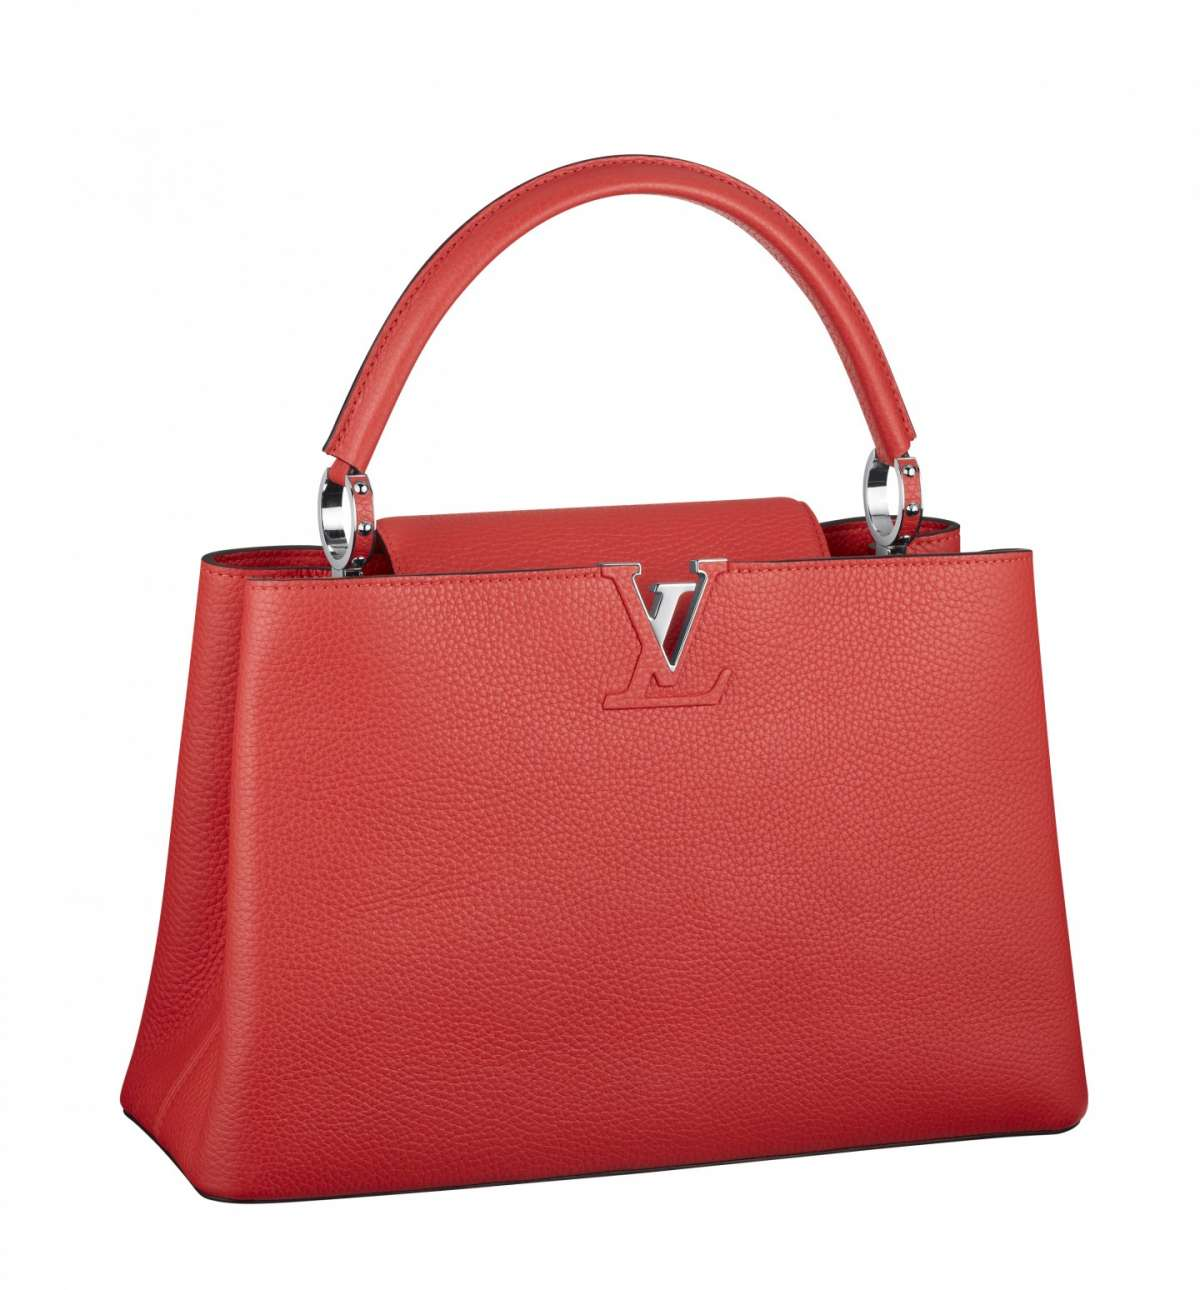 Handbag rossa Louis Vuitton